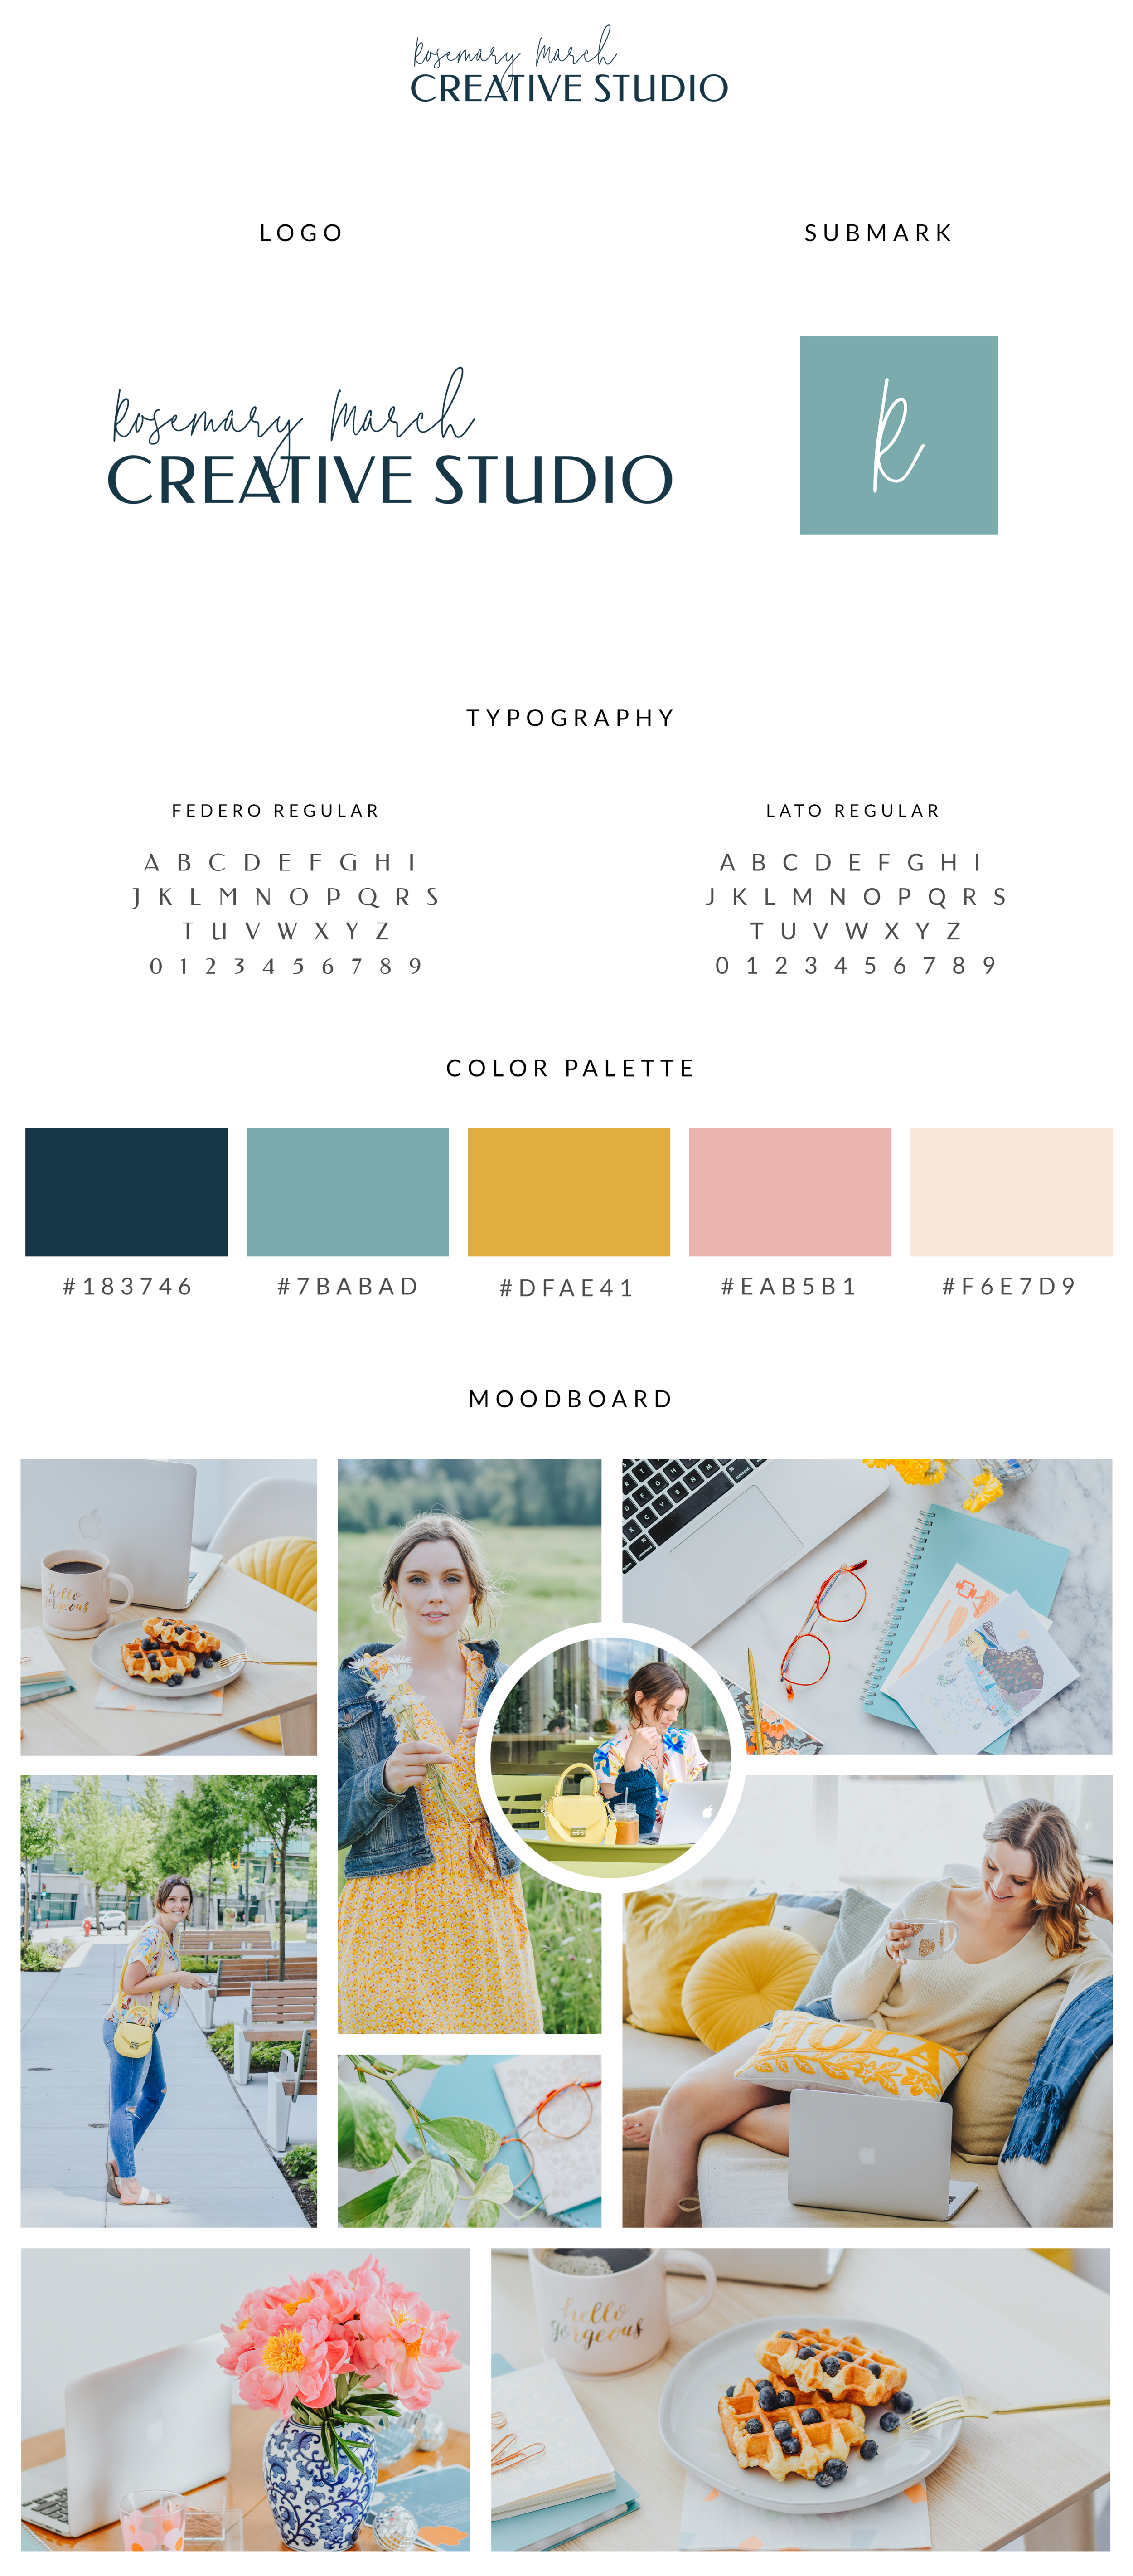 Brand Style Guide  - Rosemary March Creative Studio